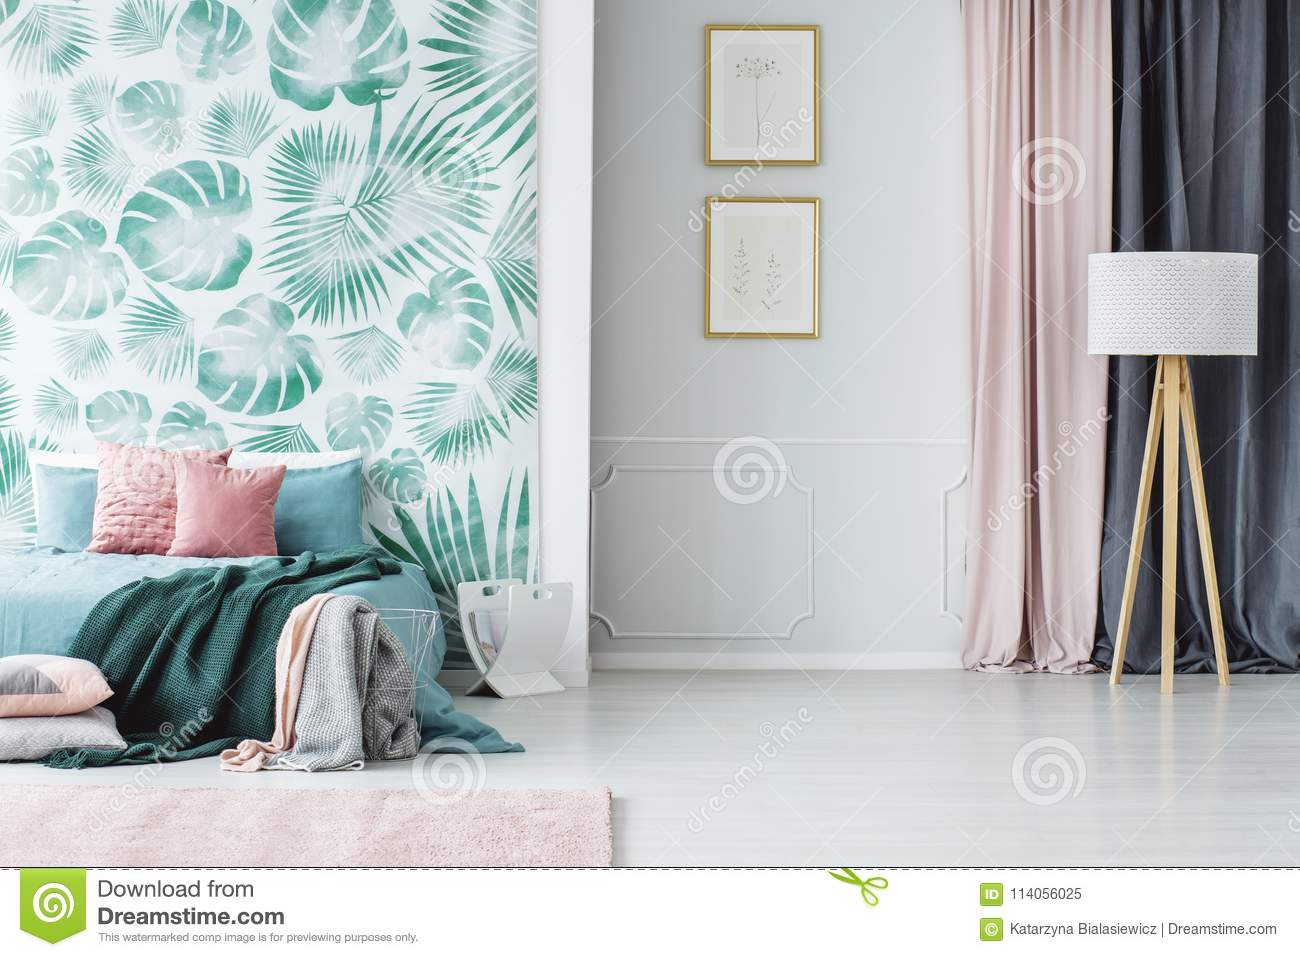 24 946 Pink Bedroom Photos Free Royalty Free Stock Photos From Dreamstime